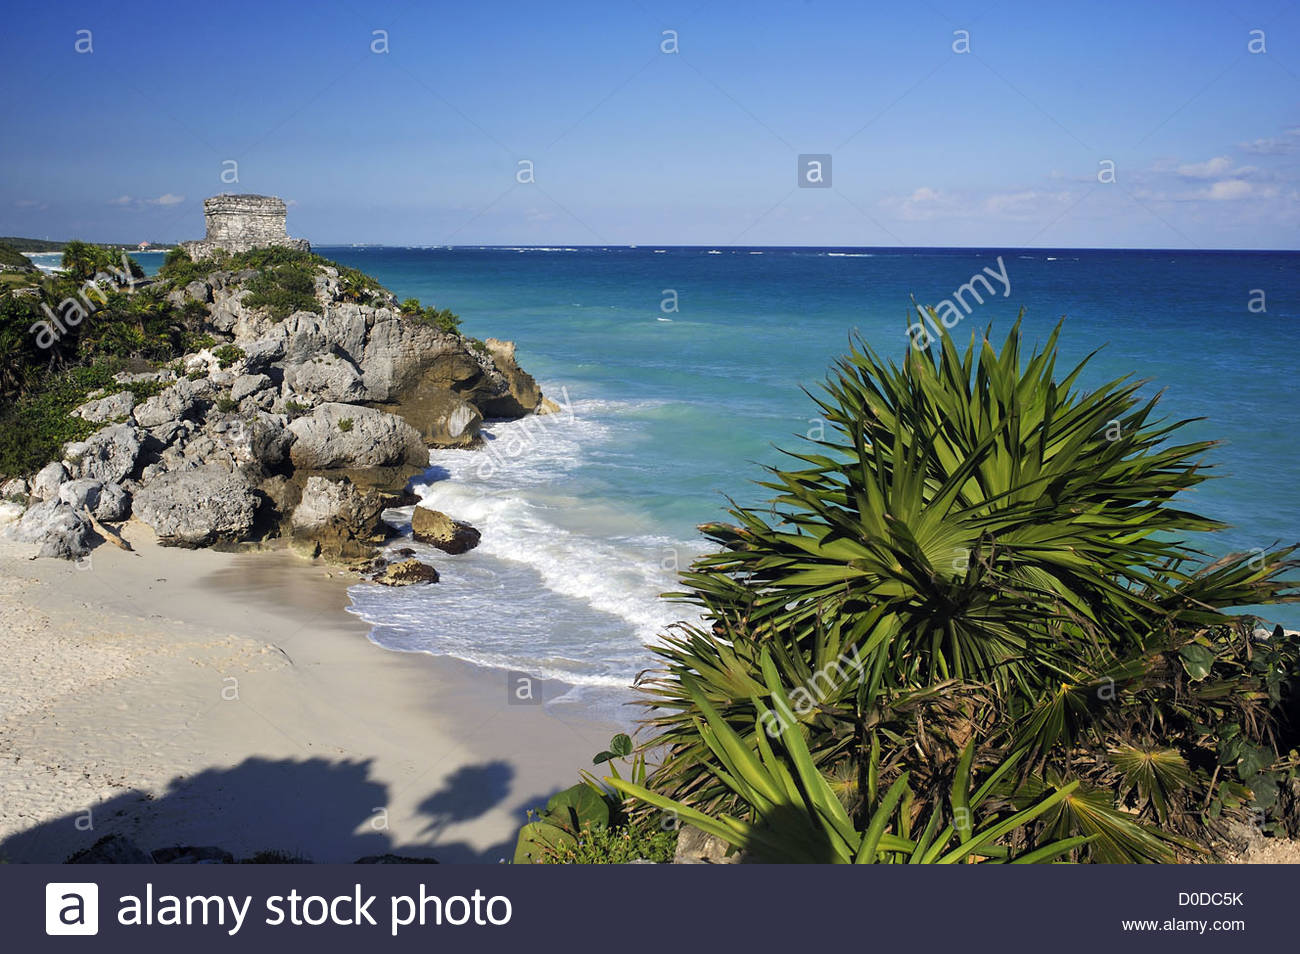 THE ARCHAEOLOGICAL DIG OF TULUM PRE-COLOMBIAN MAYAN CITY QUINTANA ROO MEXICO NORTH AMERICA - Stock Image